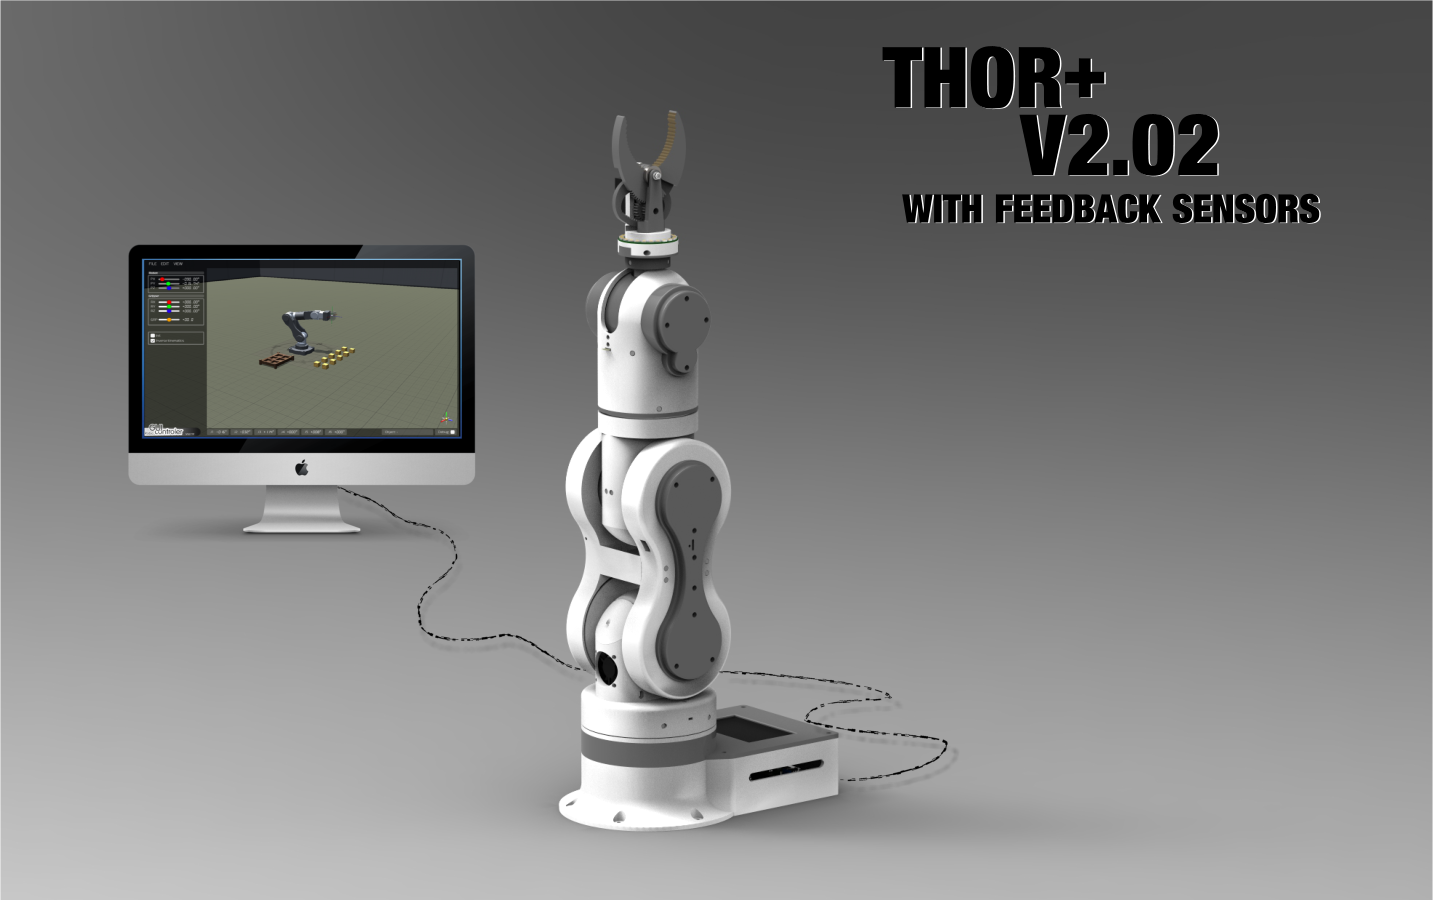 Thor' robot with addons and GUI | Hackaday io